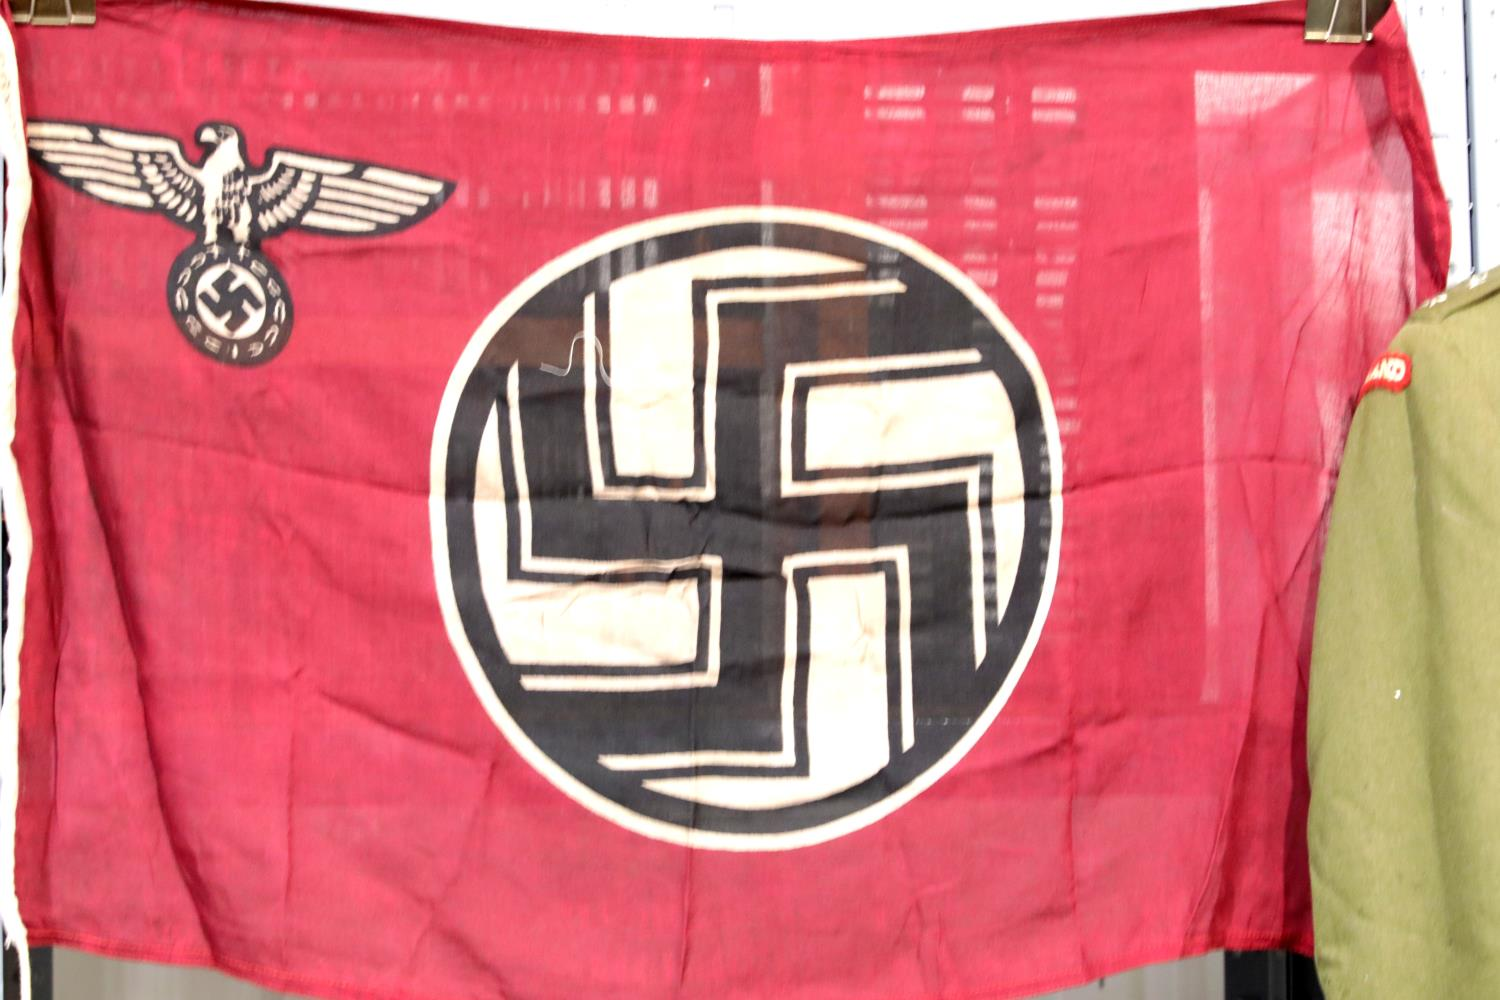 Lot 3010 - German WWII type battle flag with embroidered label 'Franzs Eberhardt Fahnerfabrik West', 95 x 55